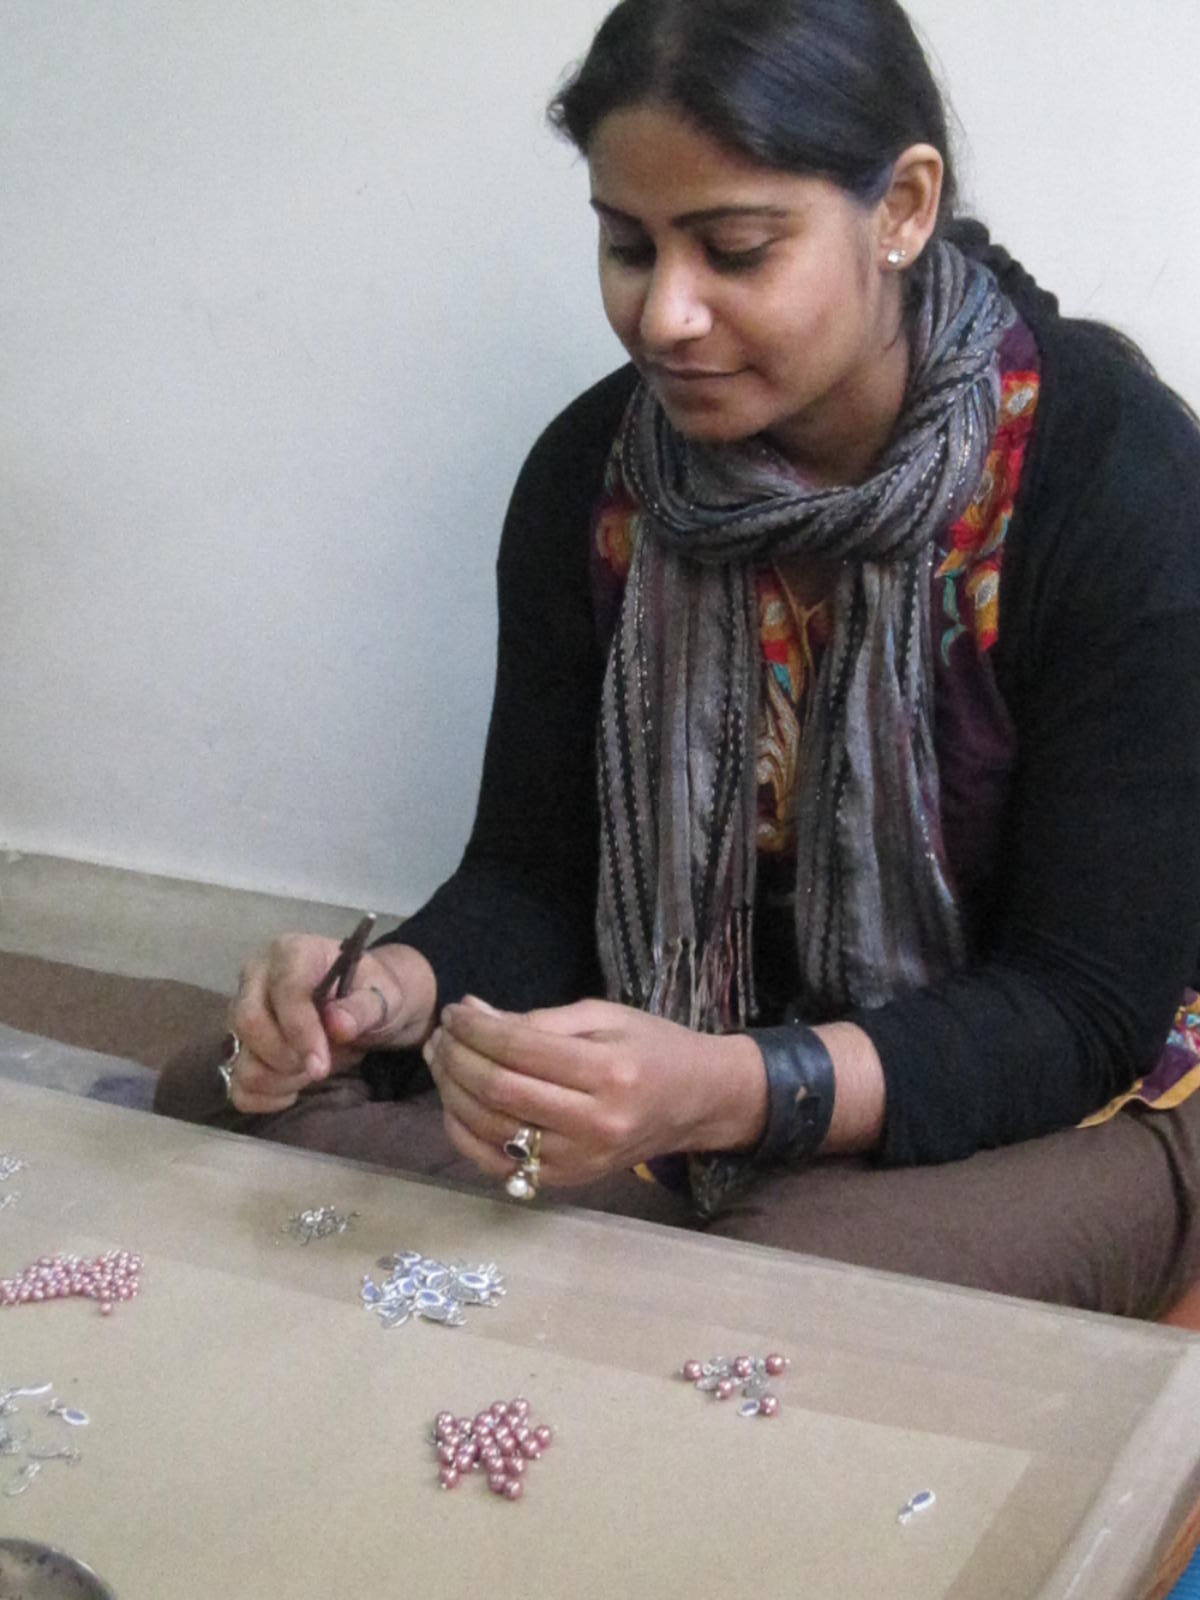 Sofia, Fair Trade Artisan in India, making jewelry | Fair Anita